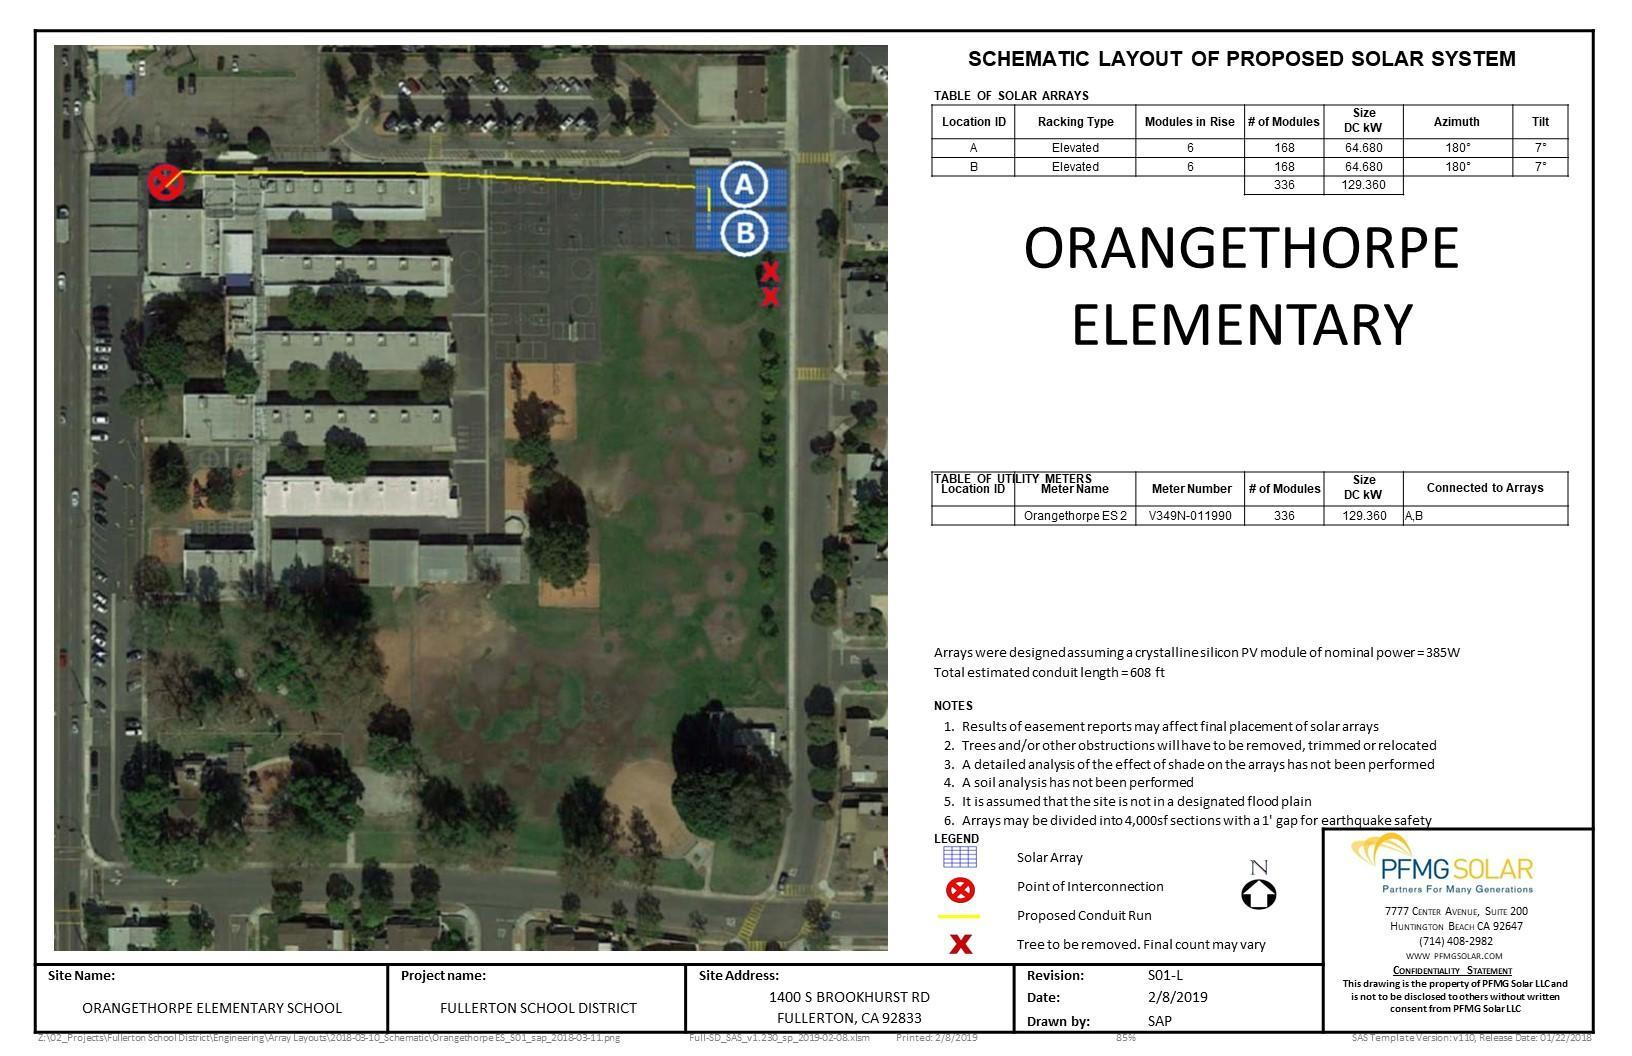 Orangethorpe Elementary Schematic Layout of Proposed Solar System